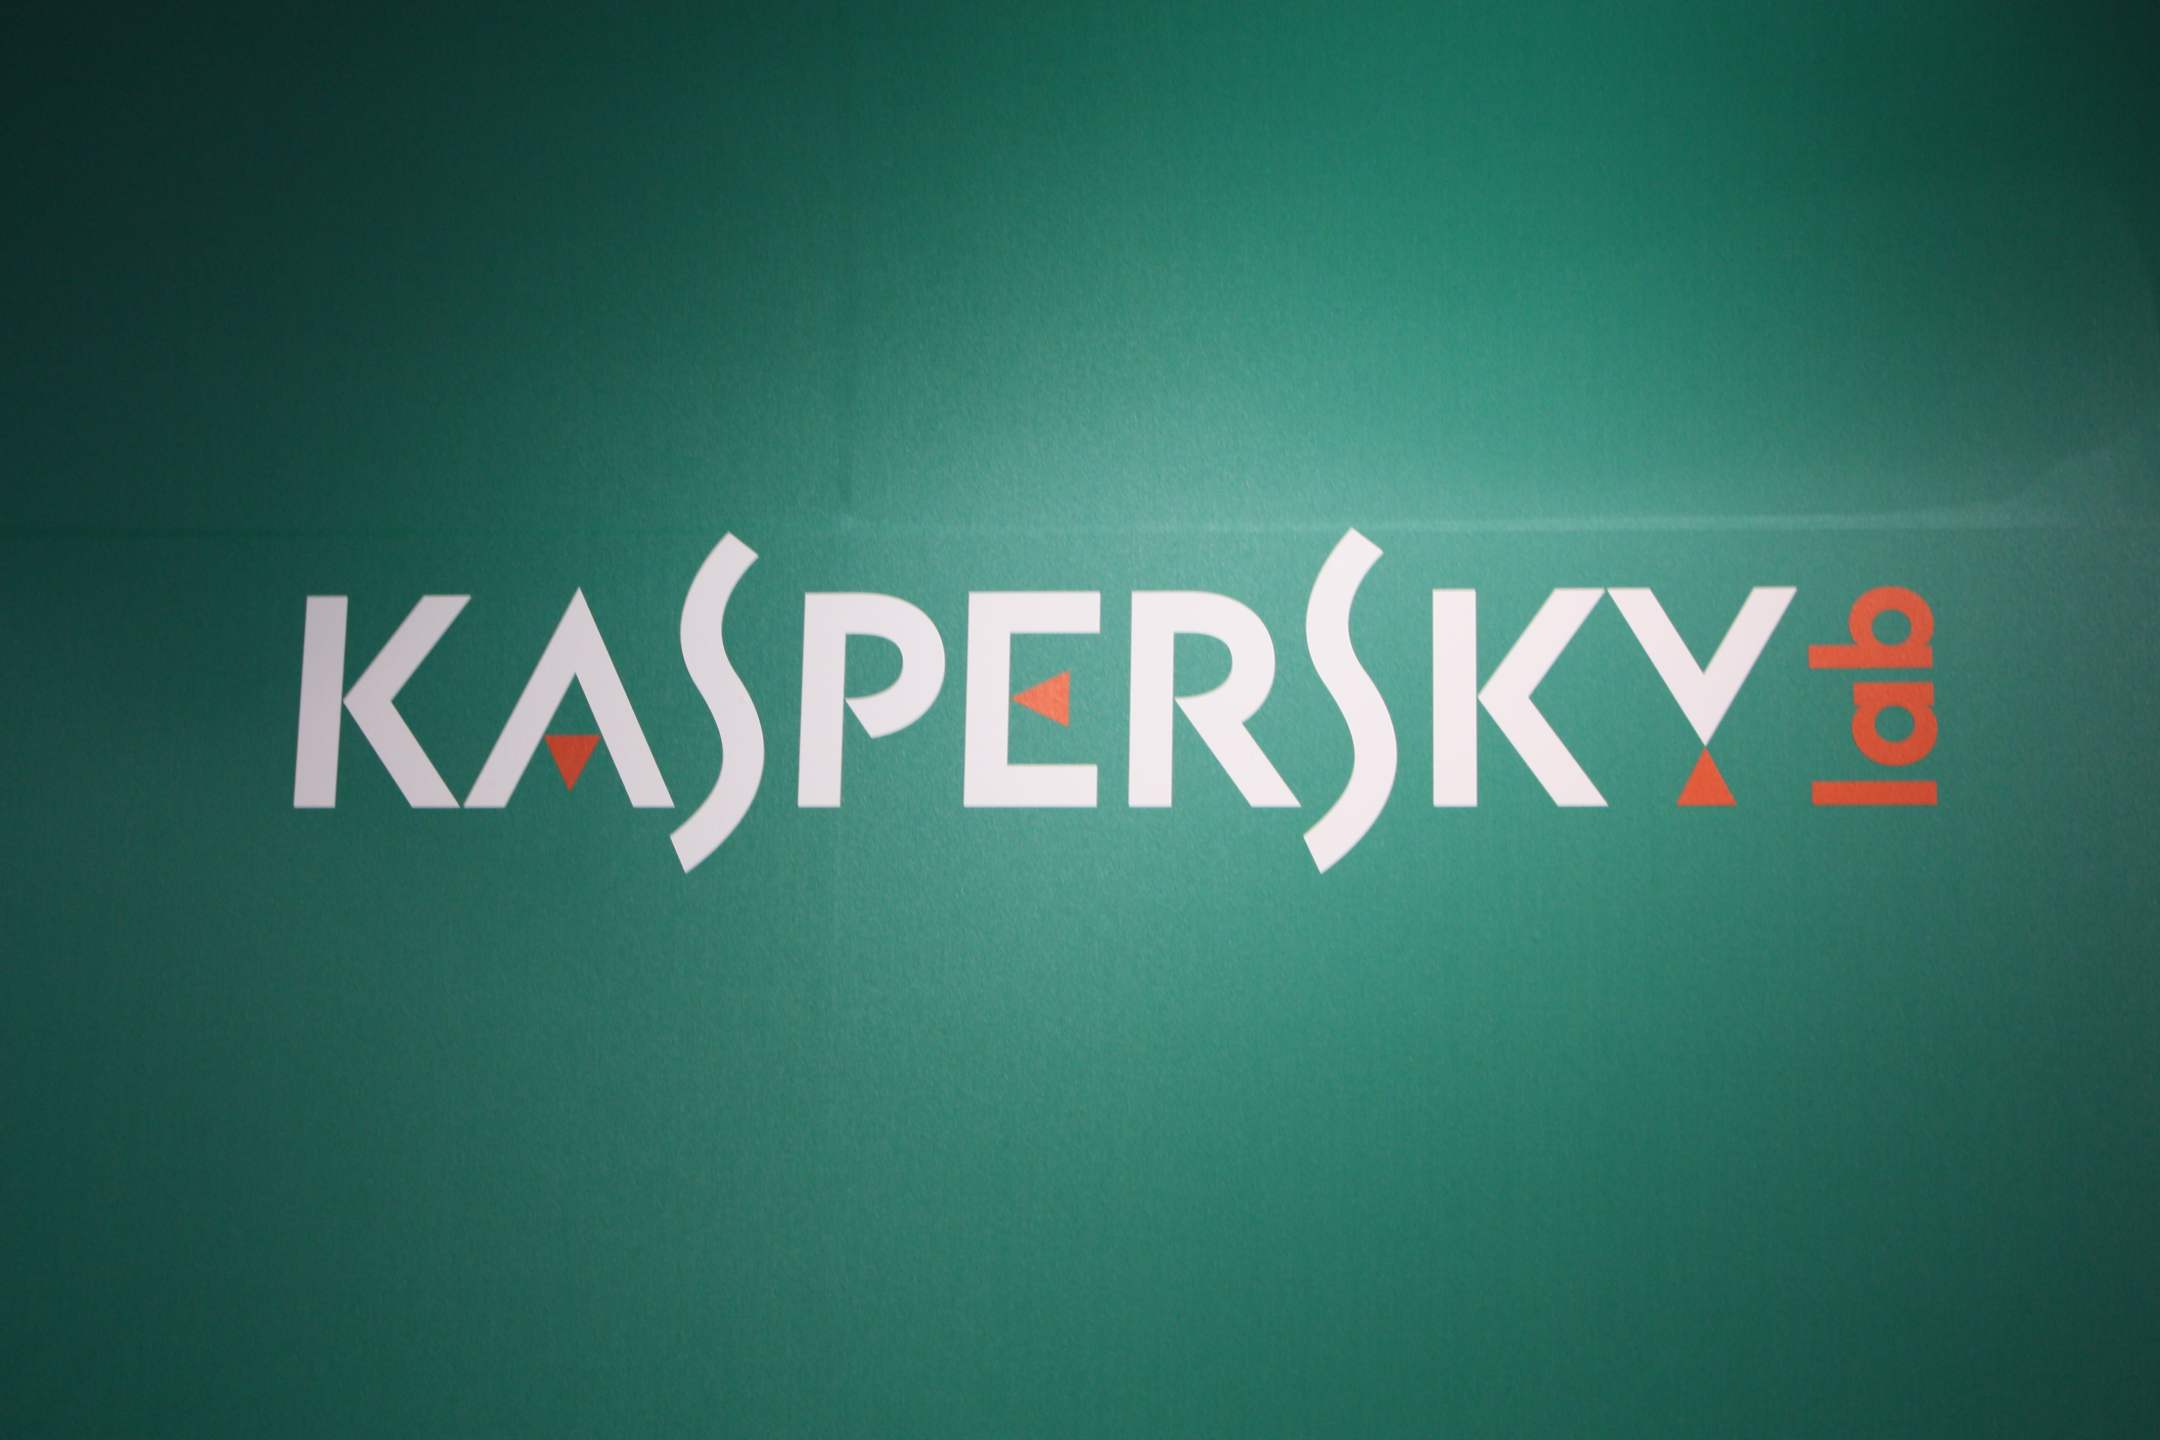 Kaspersky Lab plans Swiss data center to combat spying allegations